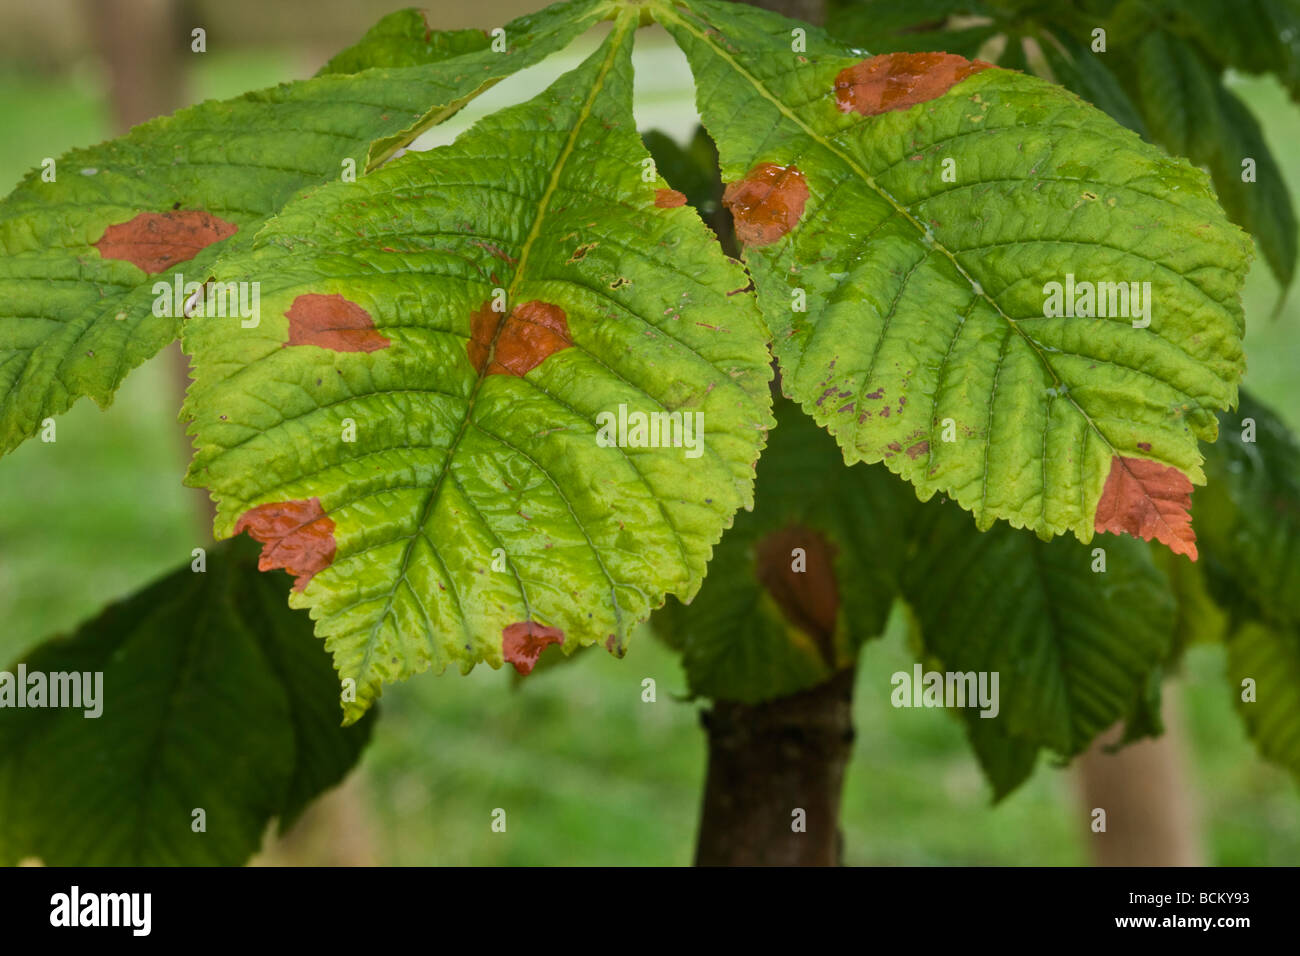 Leaf blotch spots on a horse chestnut leaf - Stock Image